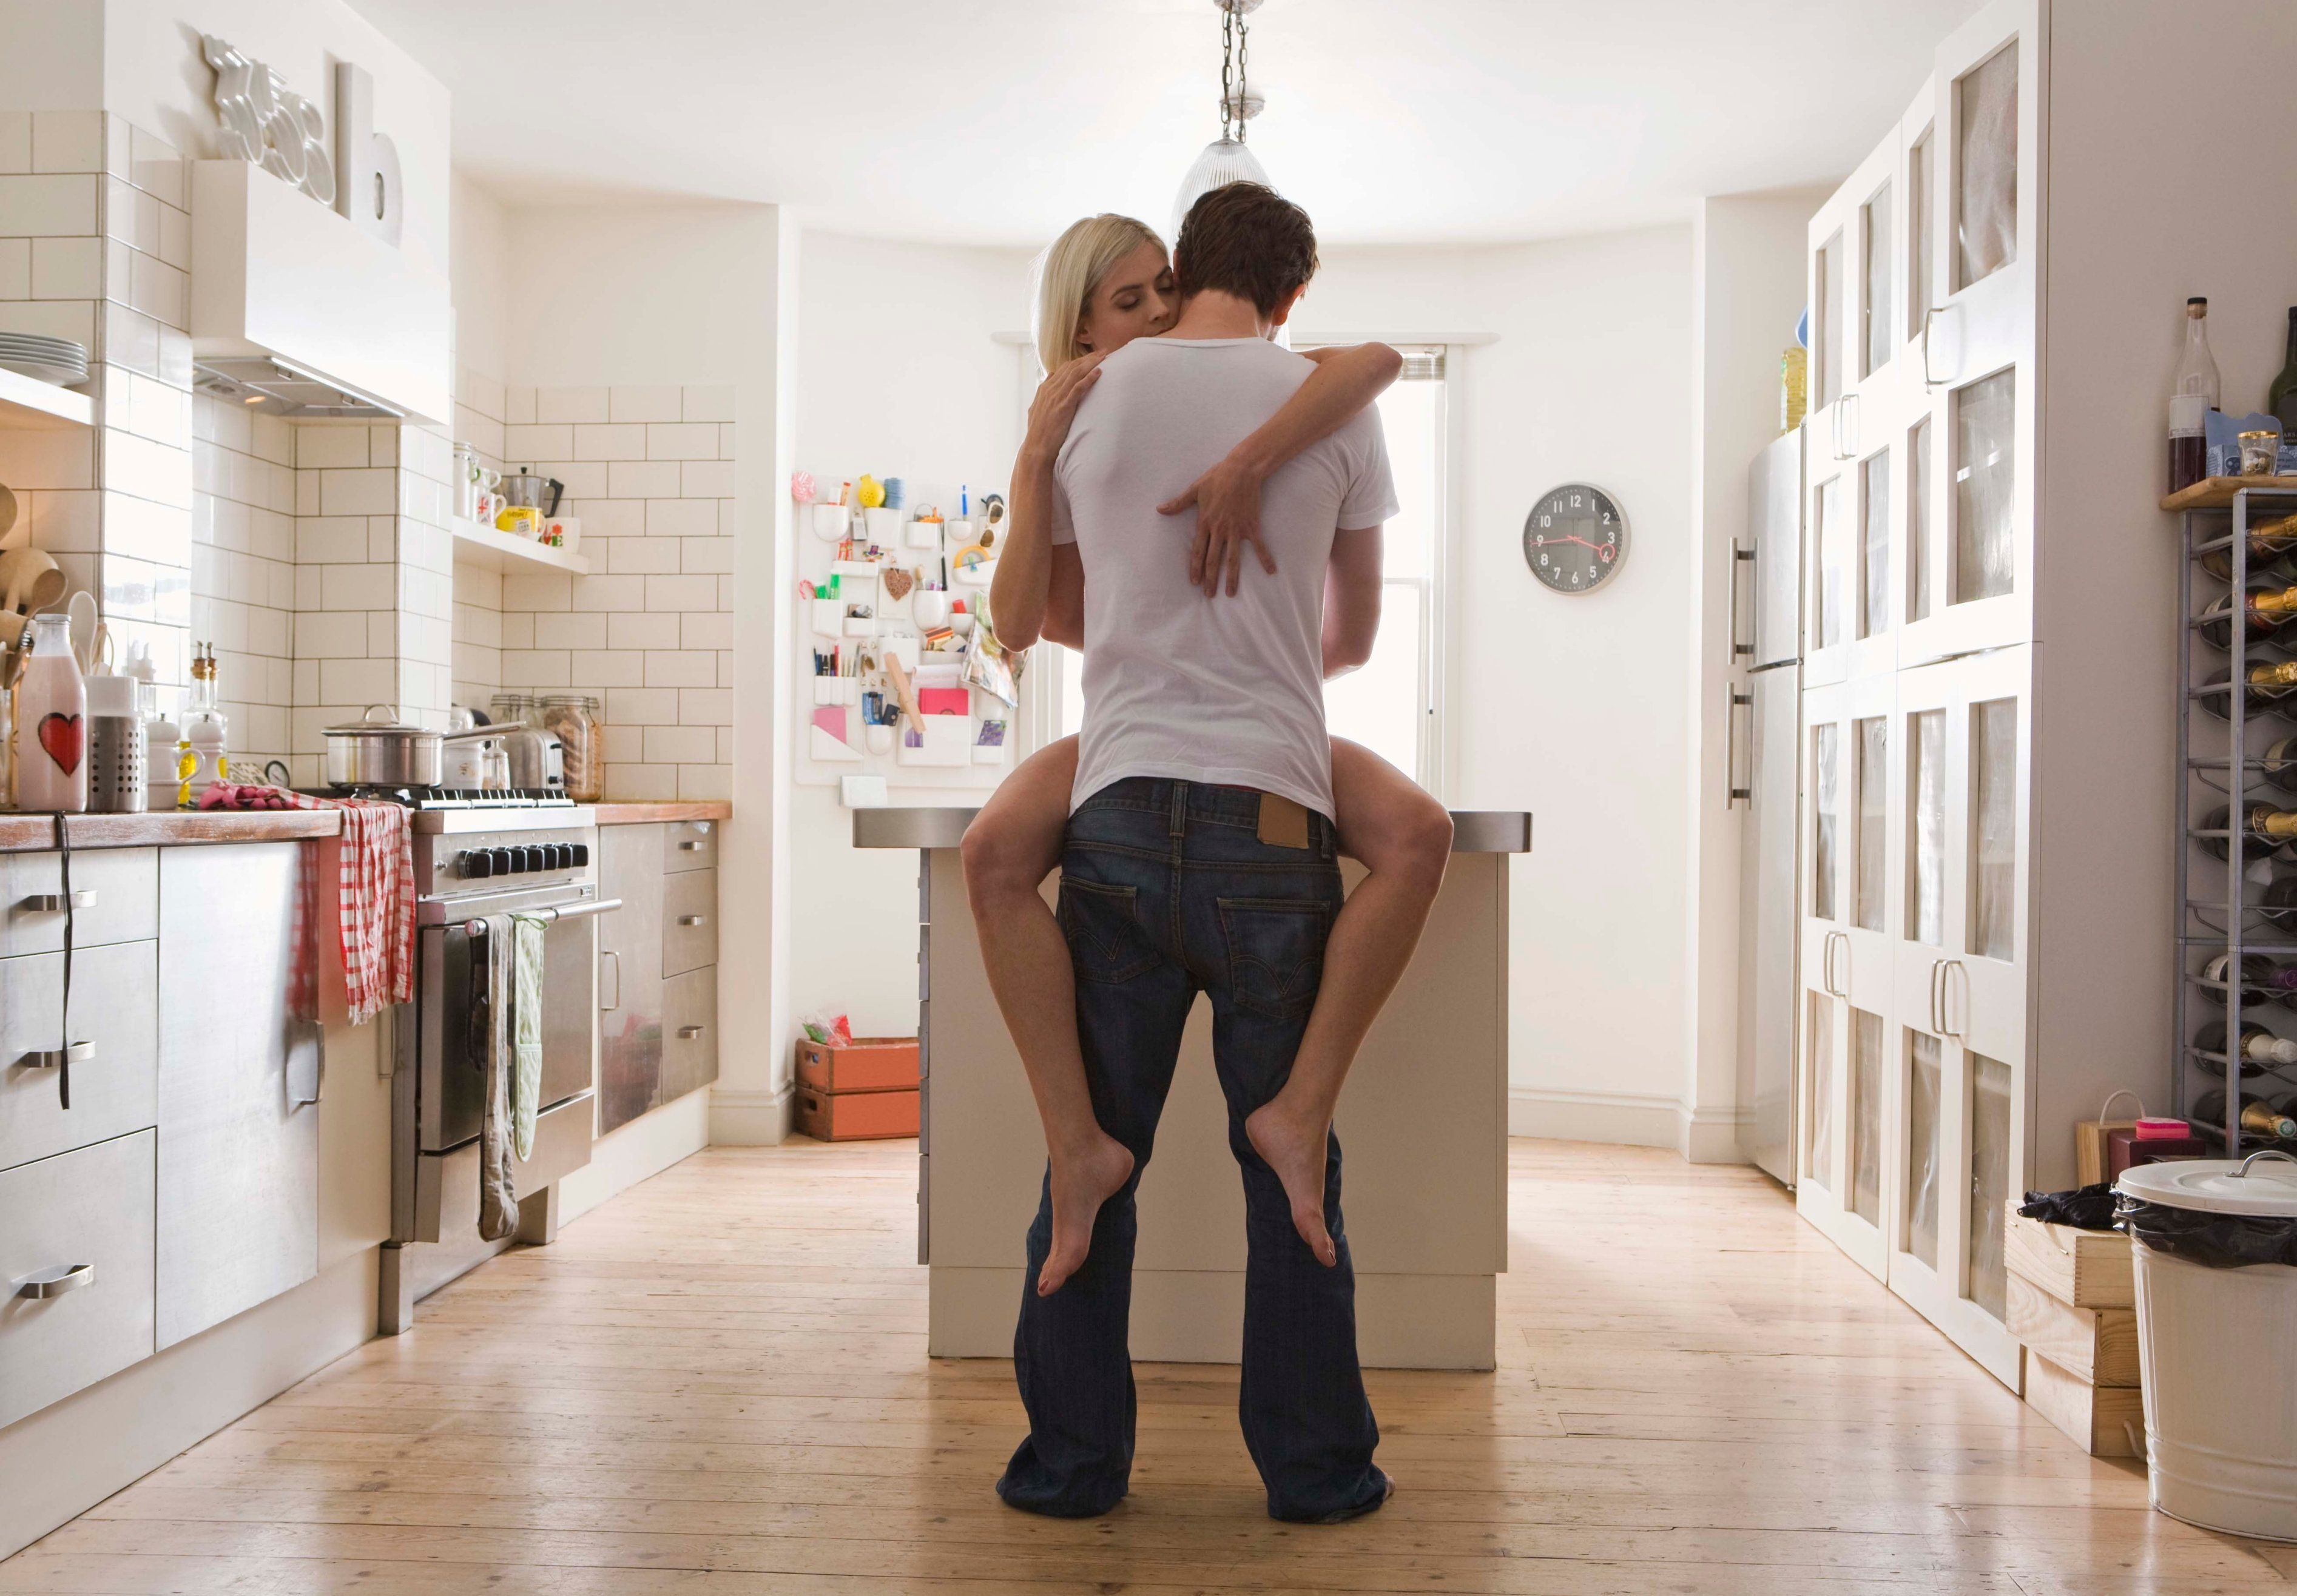 Affectionate couple in kitchen